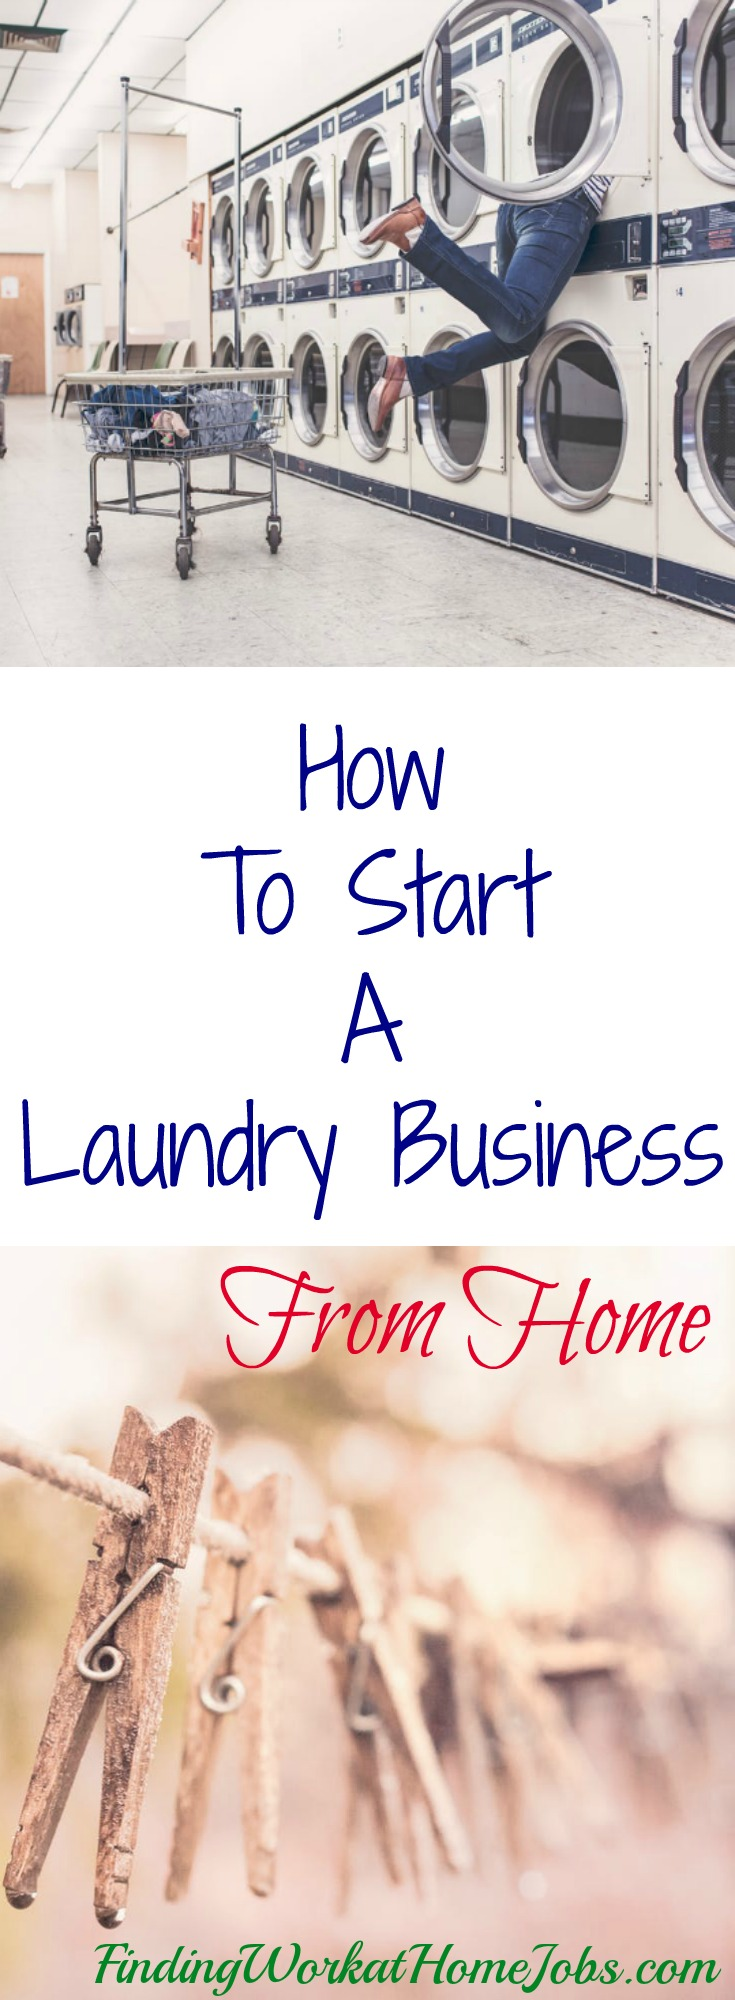 How to Start a Laundry Business From Home